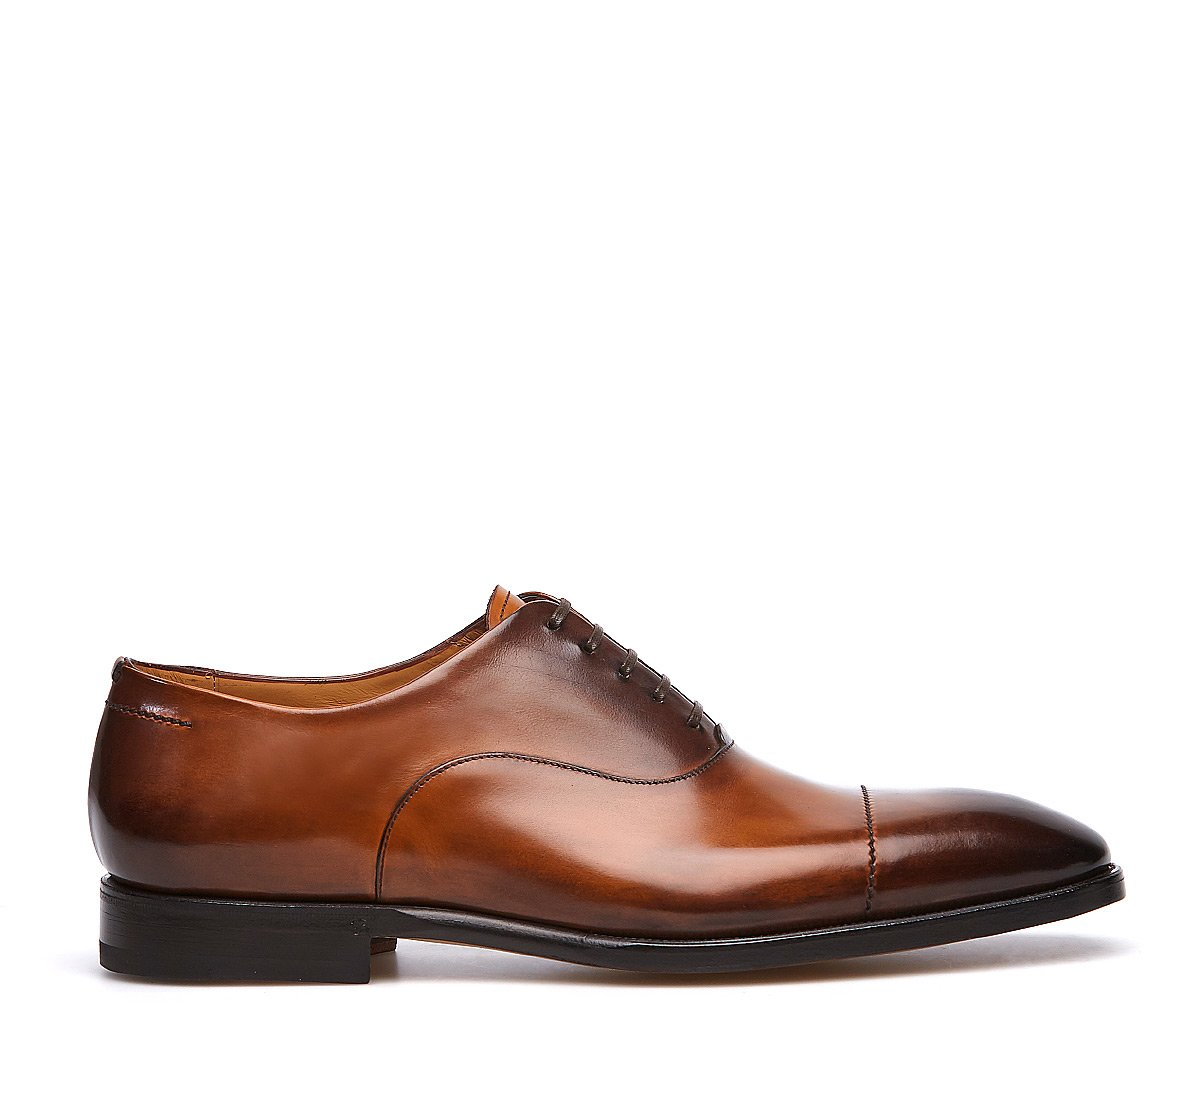 Flex Oxford shoe in hand-buffed calf leather